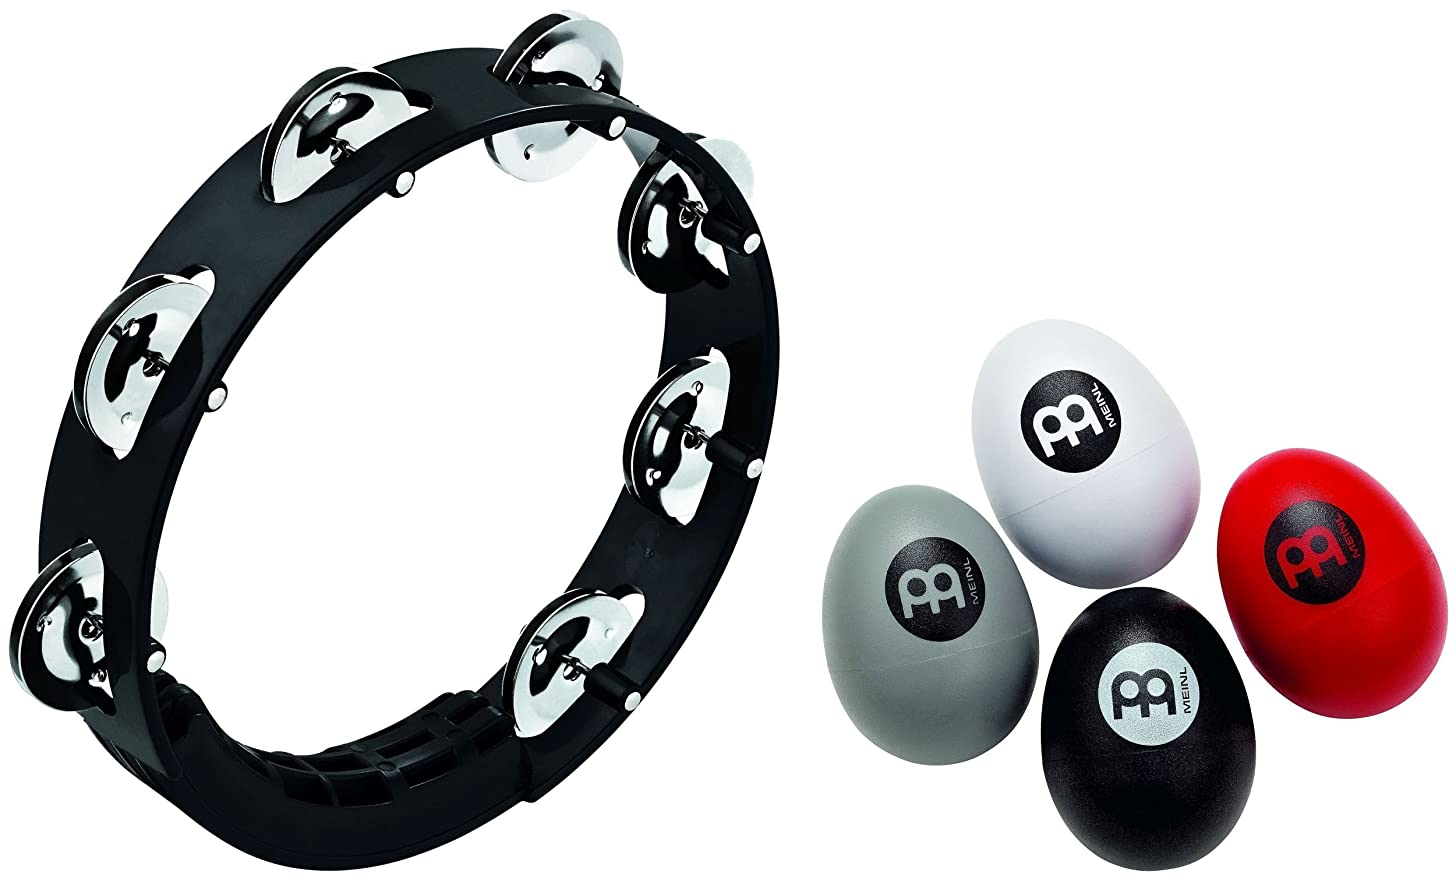 Meinl Percussion PP-4 Singer/Songwriter Percussion Pack with 4-Piece Egg Shaker Set and Compact Tambourine